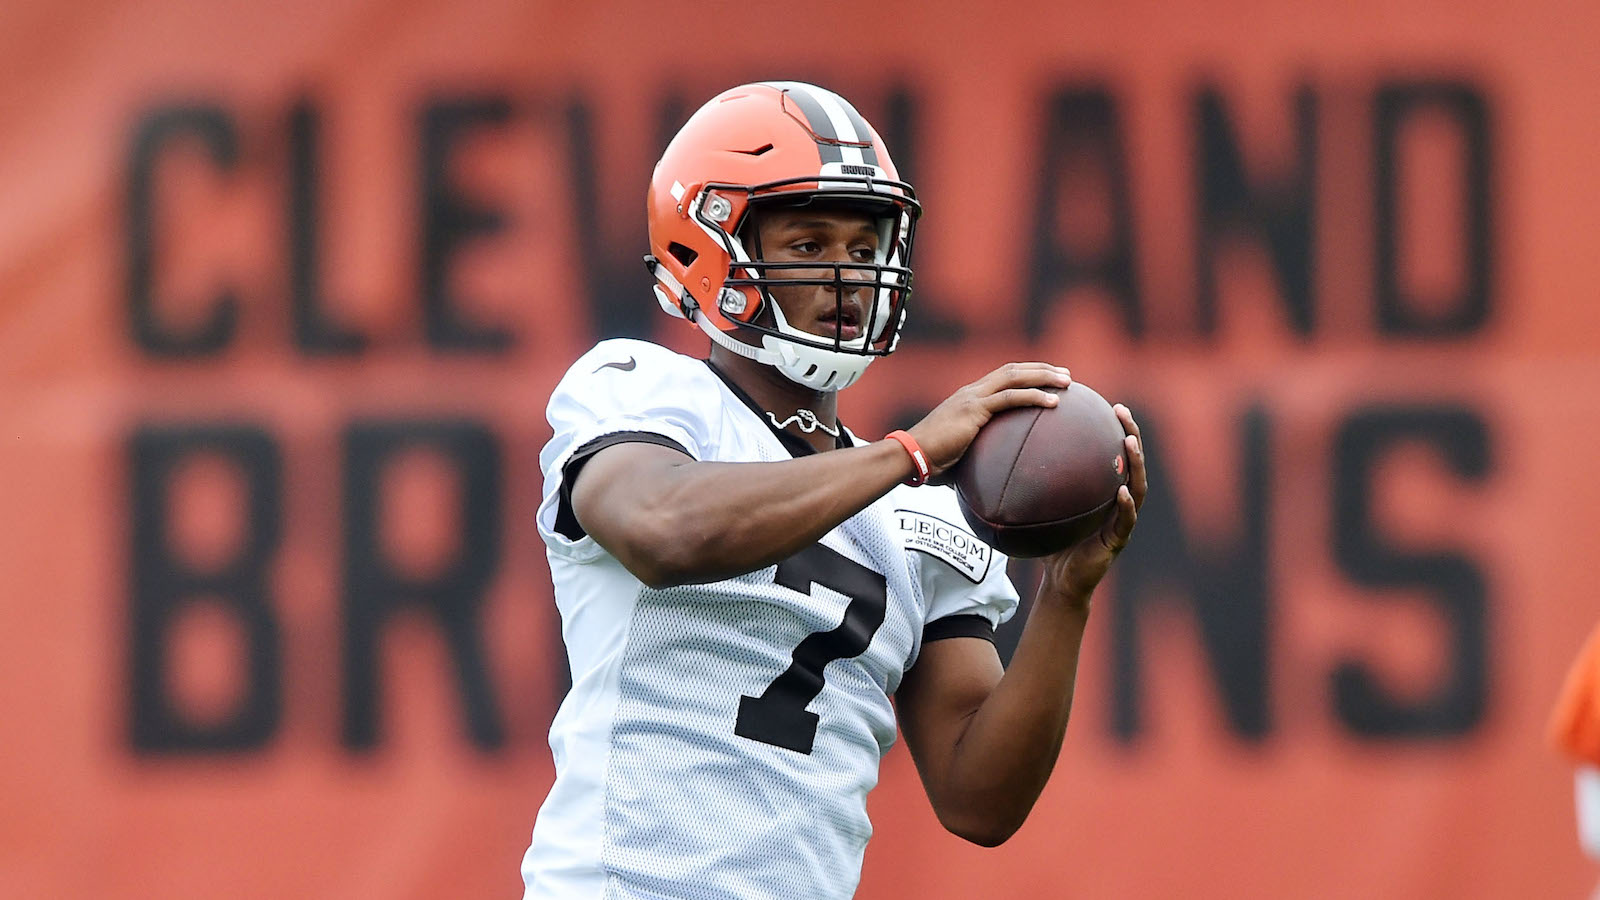 May 24, 2017; Berea, OH, USA; Cleveland Browns quarterback DeShone Kizer (7) practices during organized team activities at the Cleveland Browns training facility. Mandatory Credit: Ken Blaze-USA TODAY Sports